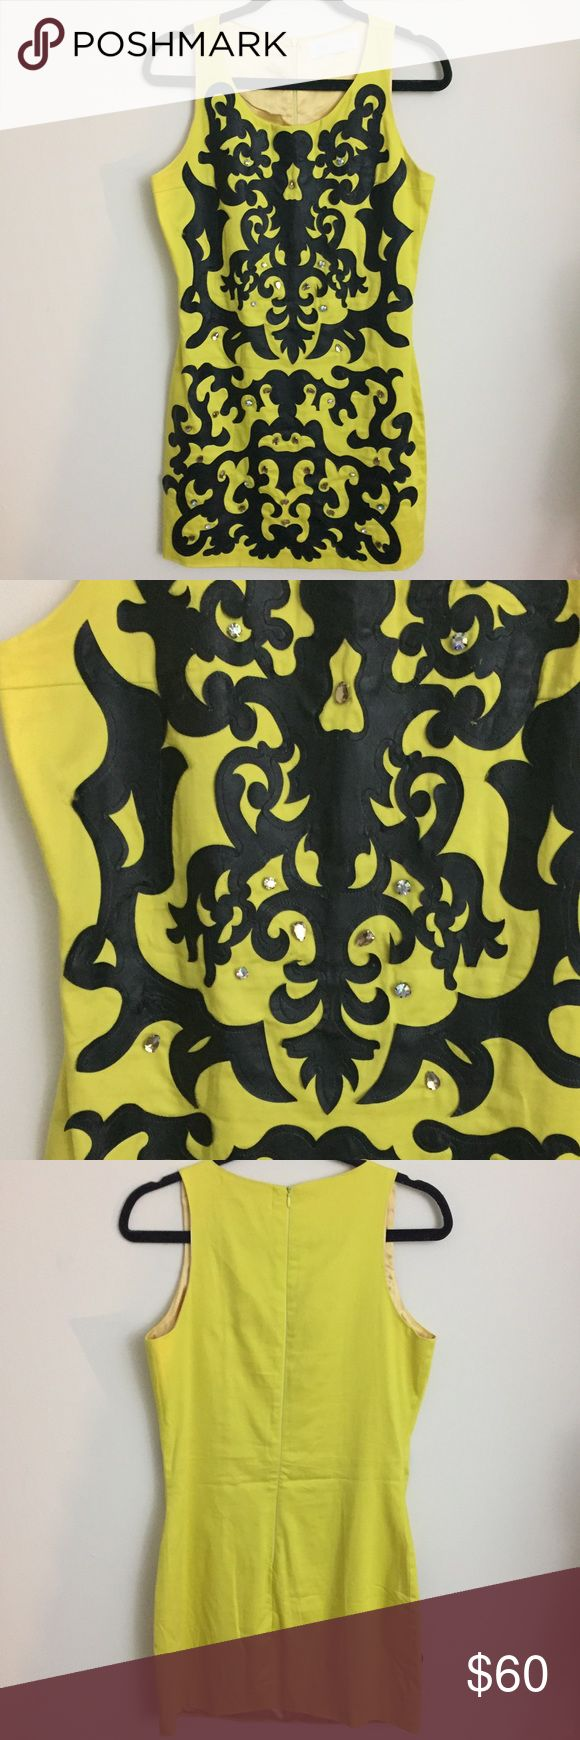 Leather embroidered dress 👗 Only worn once to a wedding - Like new! The embroidered pattern is made of leather and there are crystal applications around the front, adding even more glam. Very flattering and fitted dress. Dresses Mini